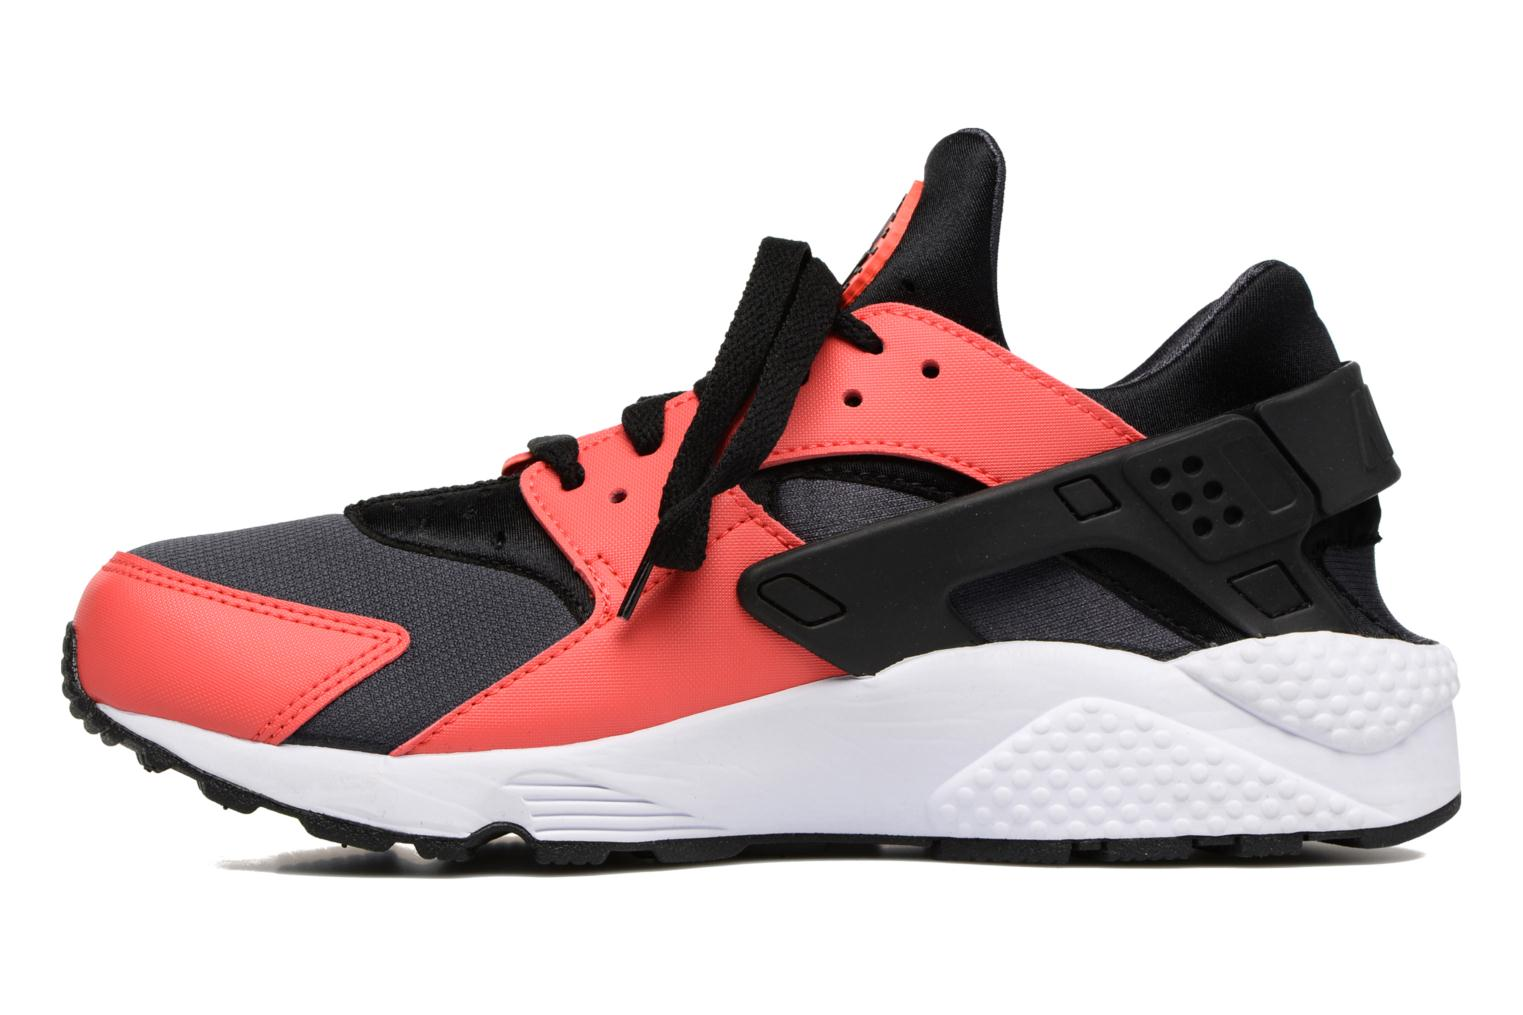 Nike Air Huarache Max Orange/Black-Black-Anthracite